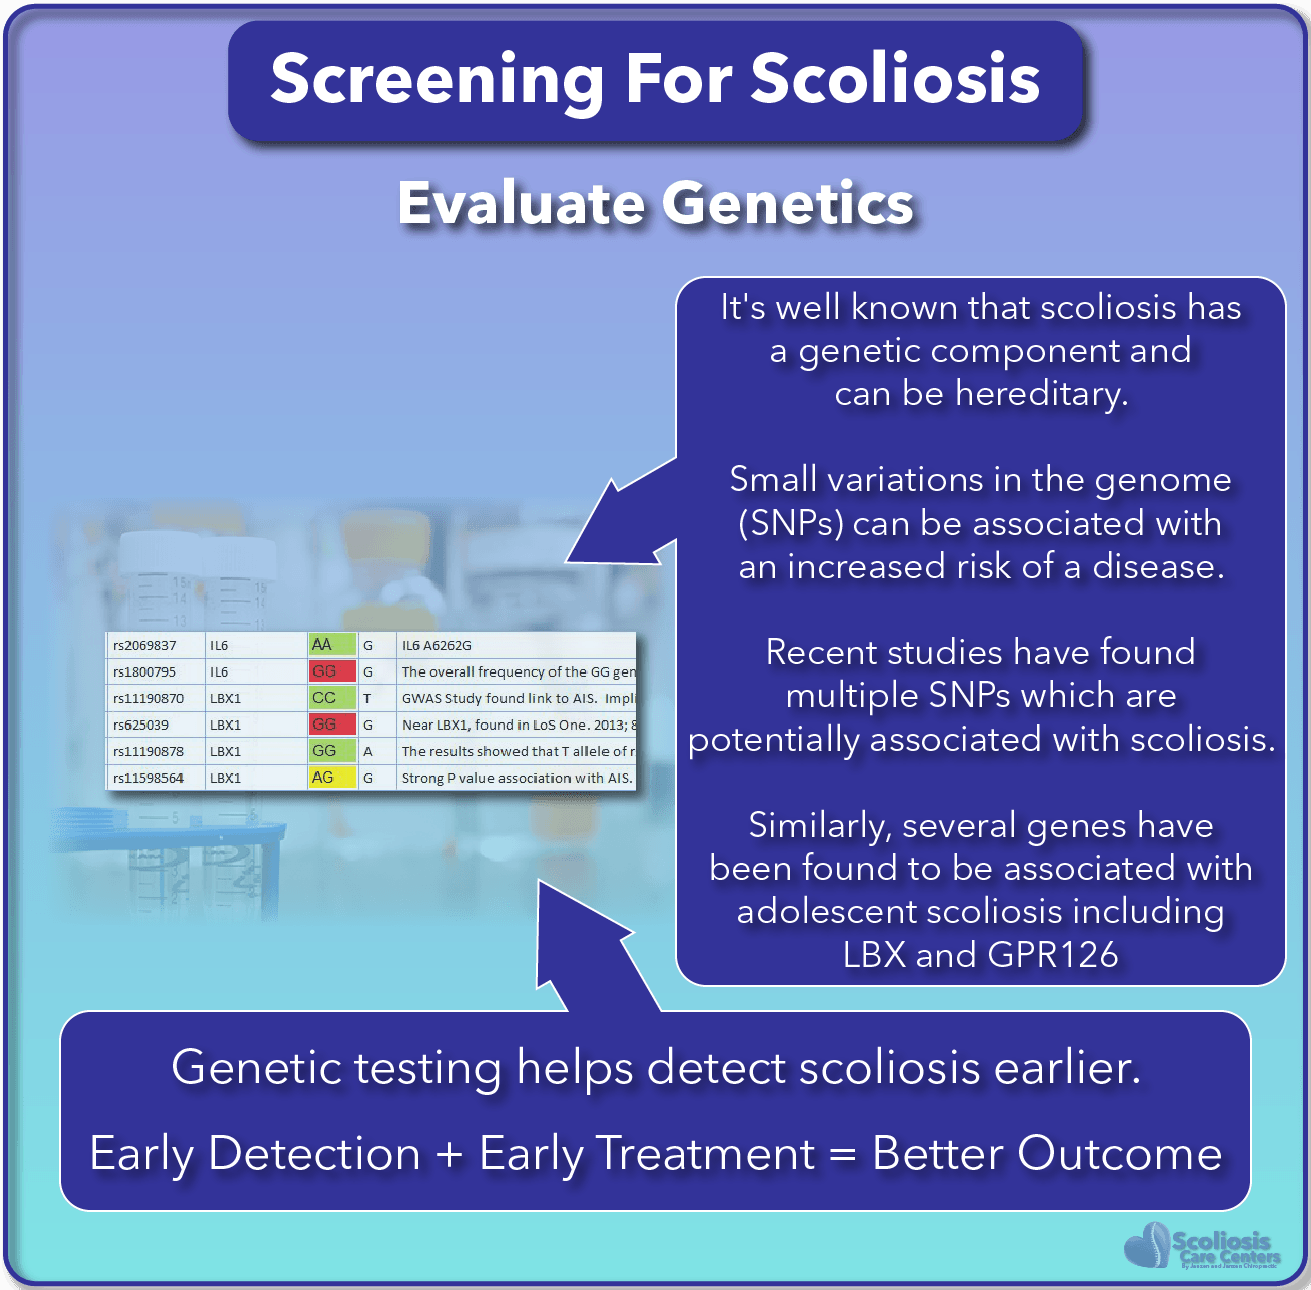 SureScreen can also look at genetic risk factors for scoliosis